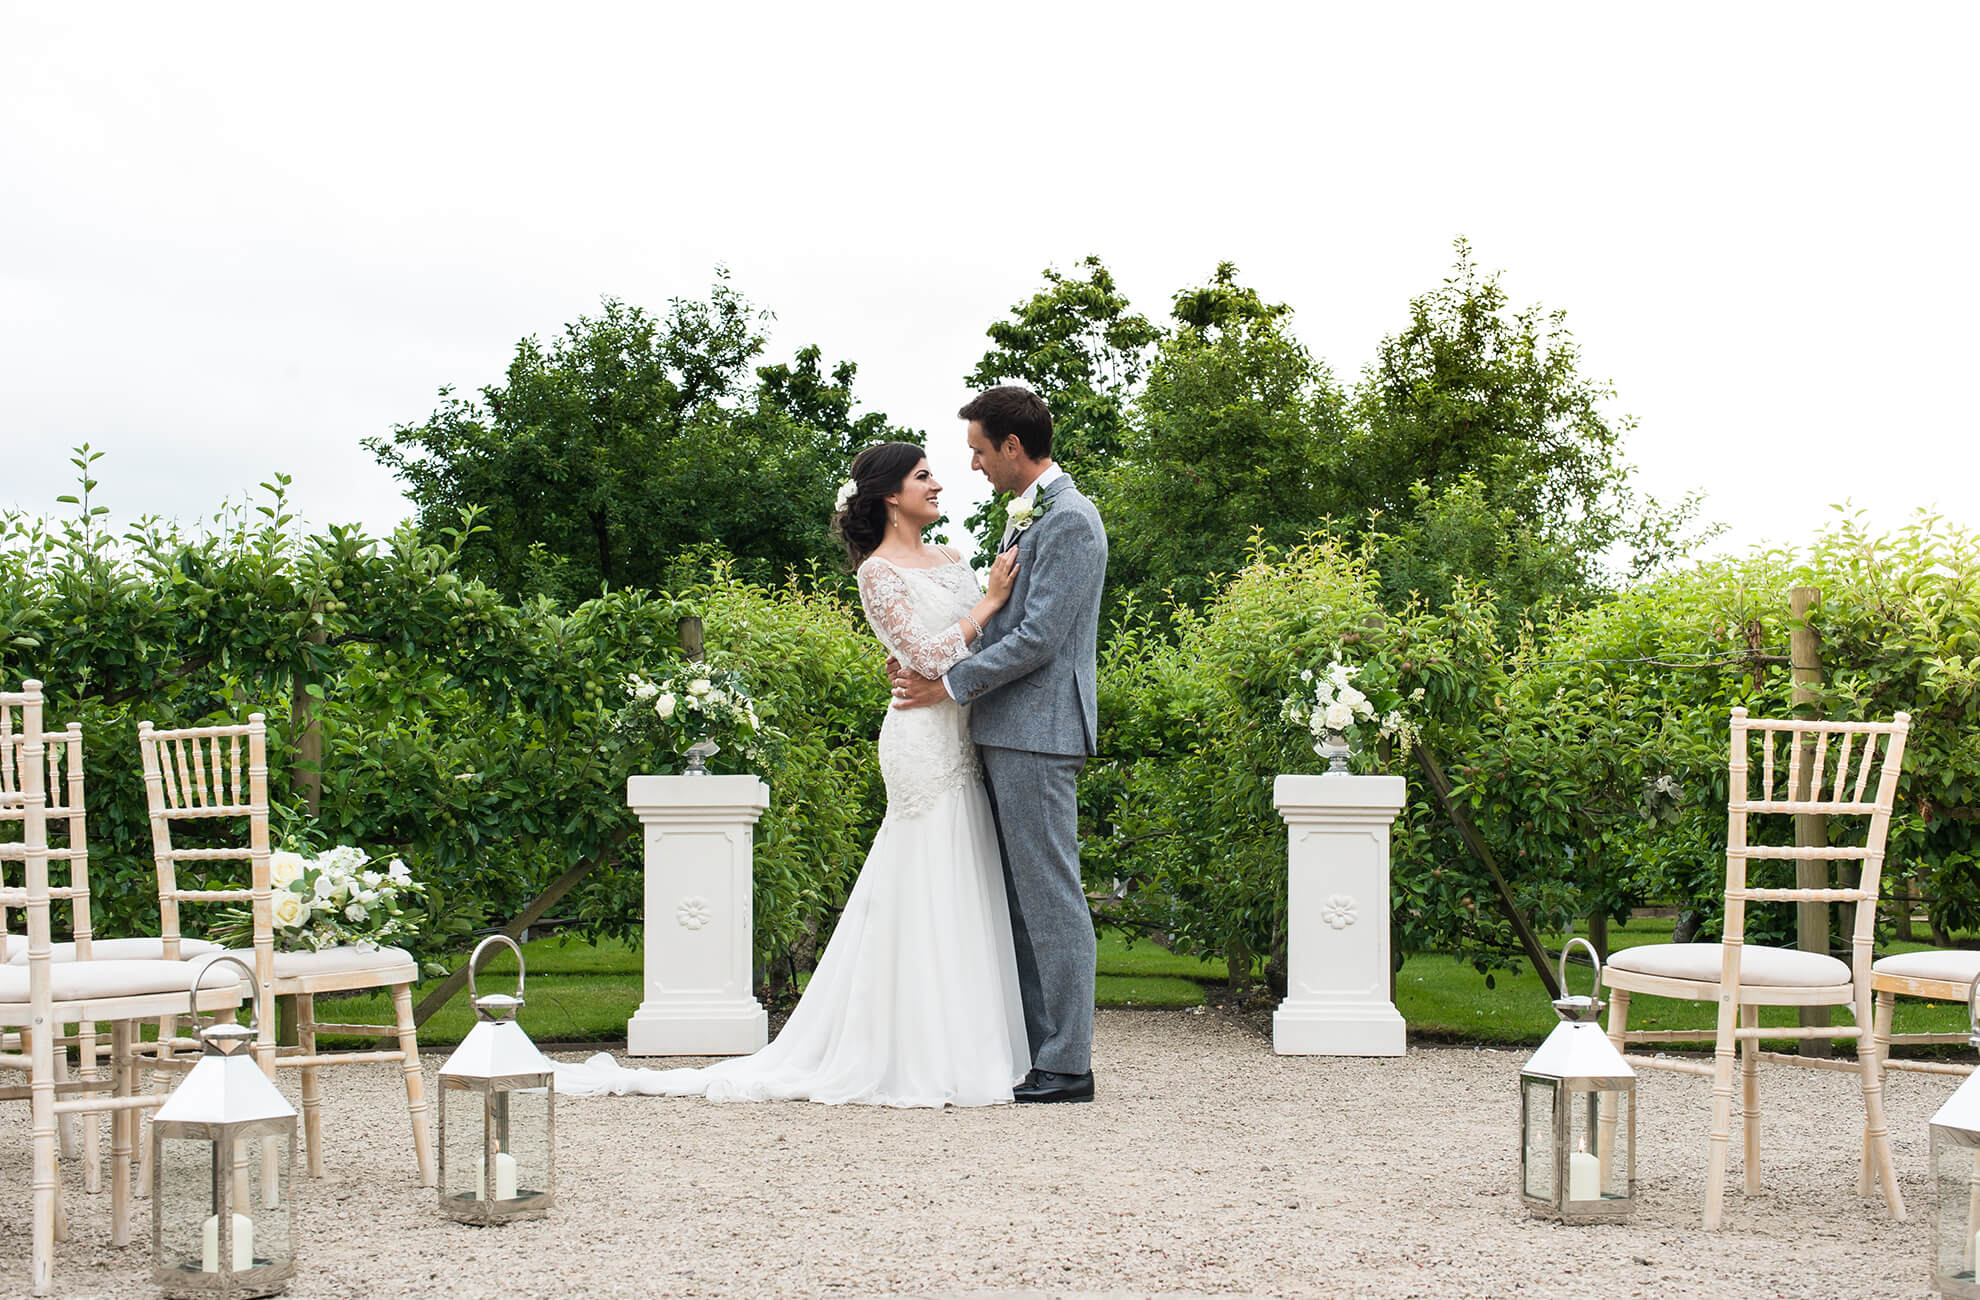 At this Cheshire wedding venue the Fruit Tree Maze creates a stunning backdrop for a wedding ceremony